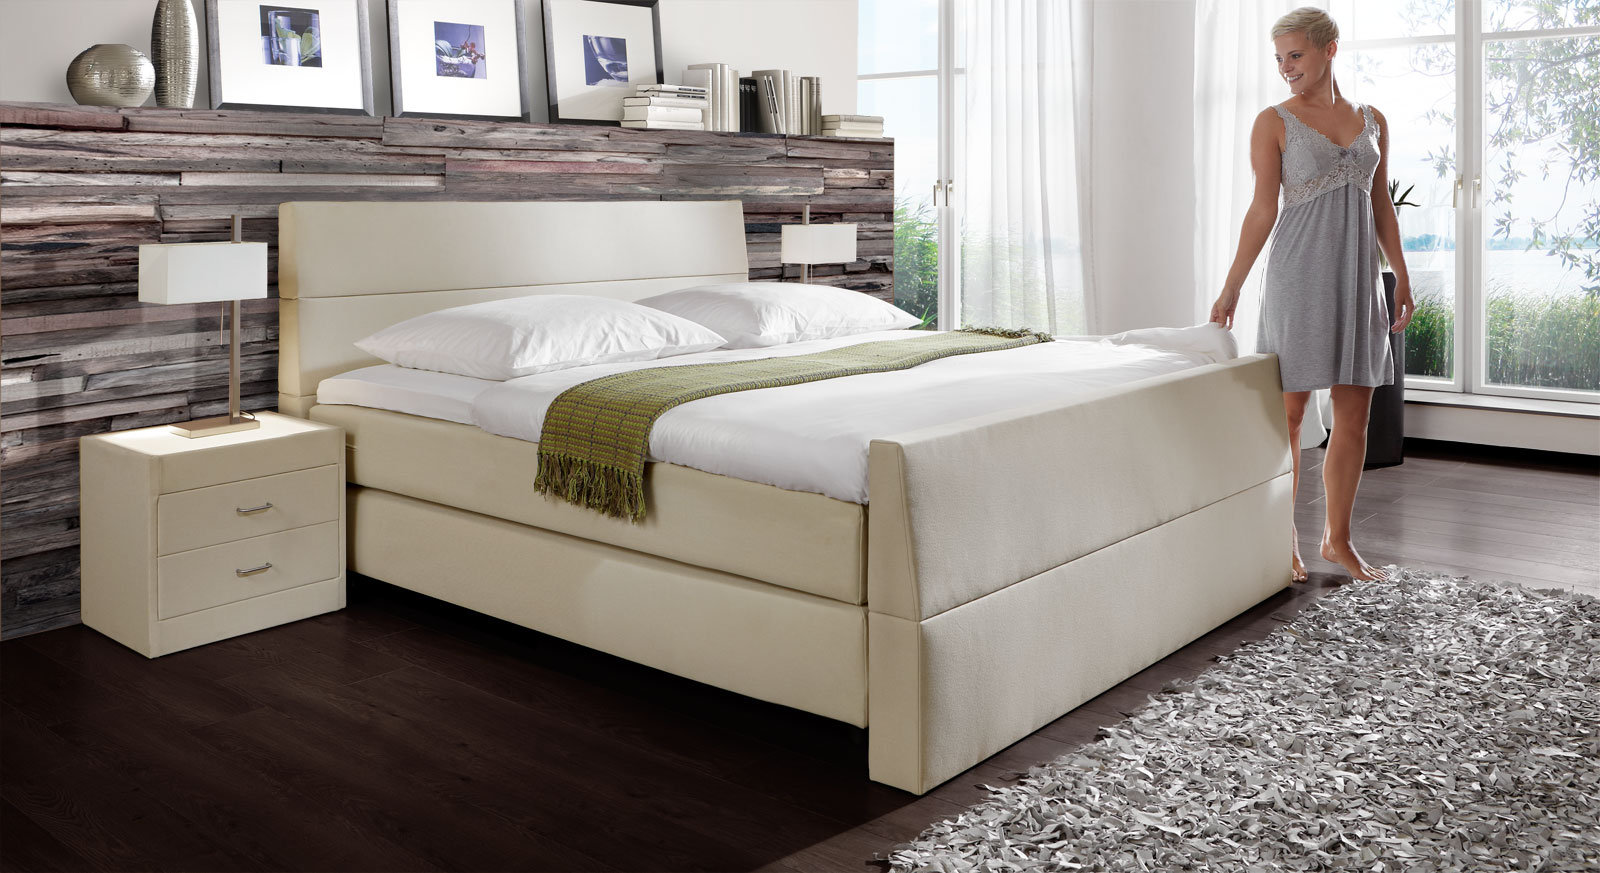 Boxspringbett Vineyard in Mina beige